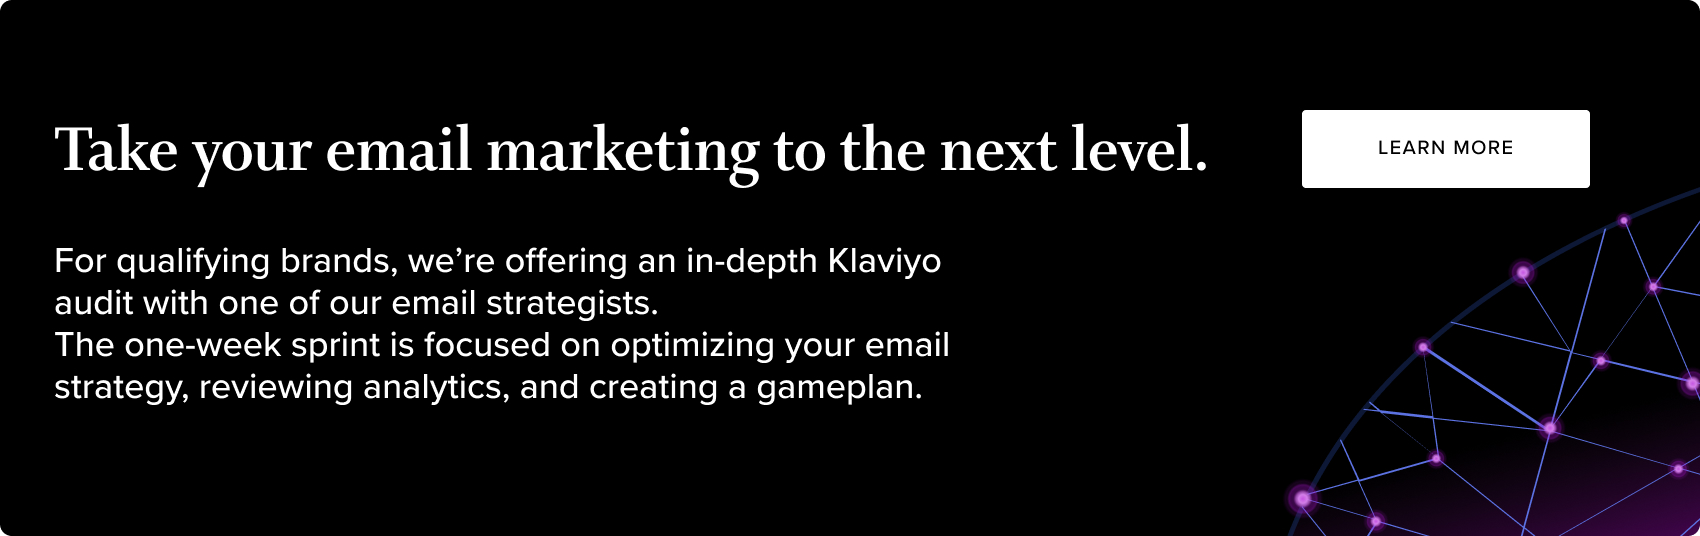 Take your email marketing to the next level.